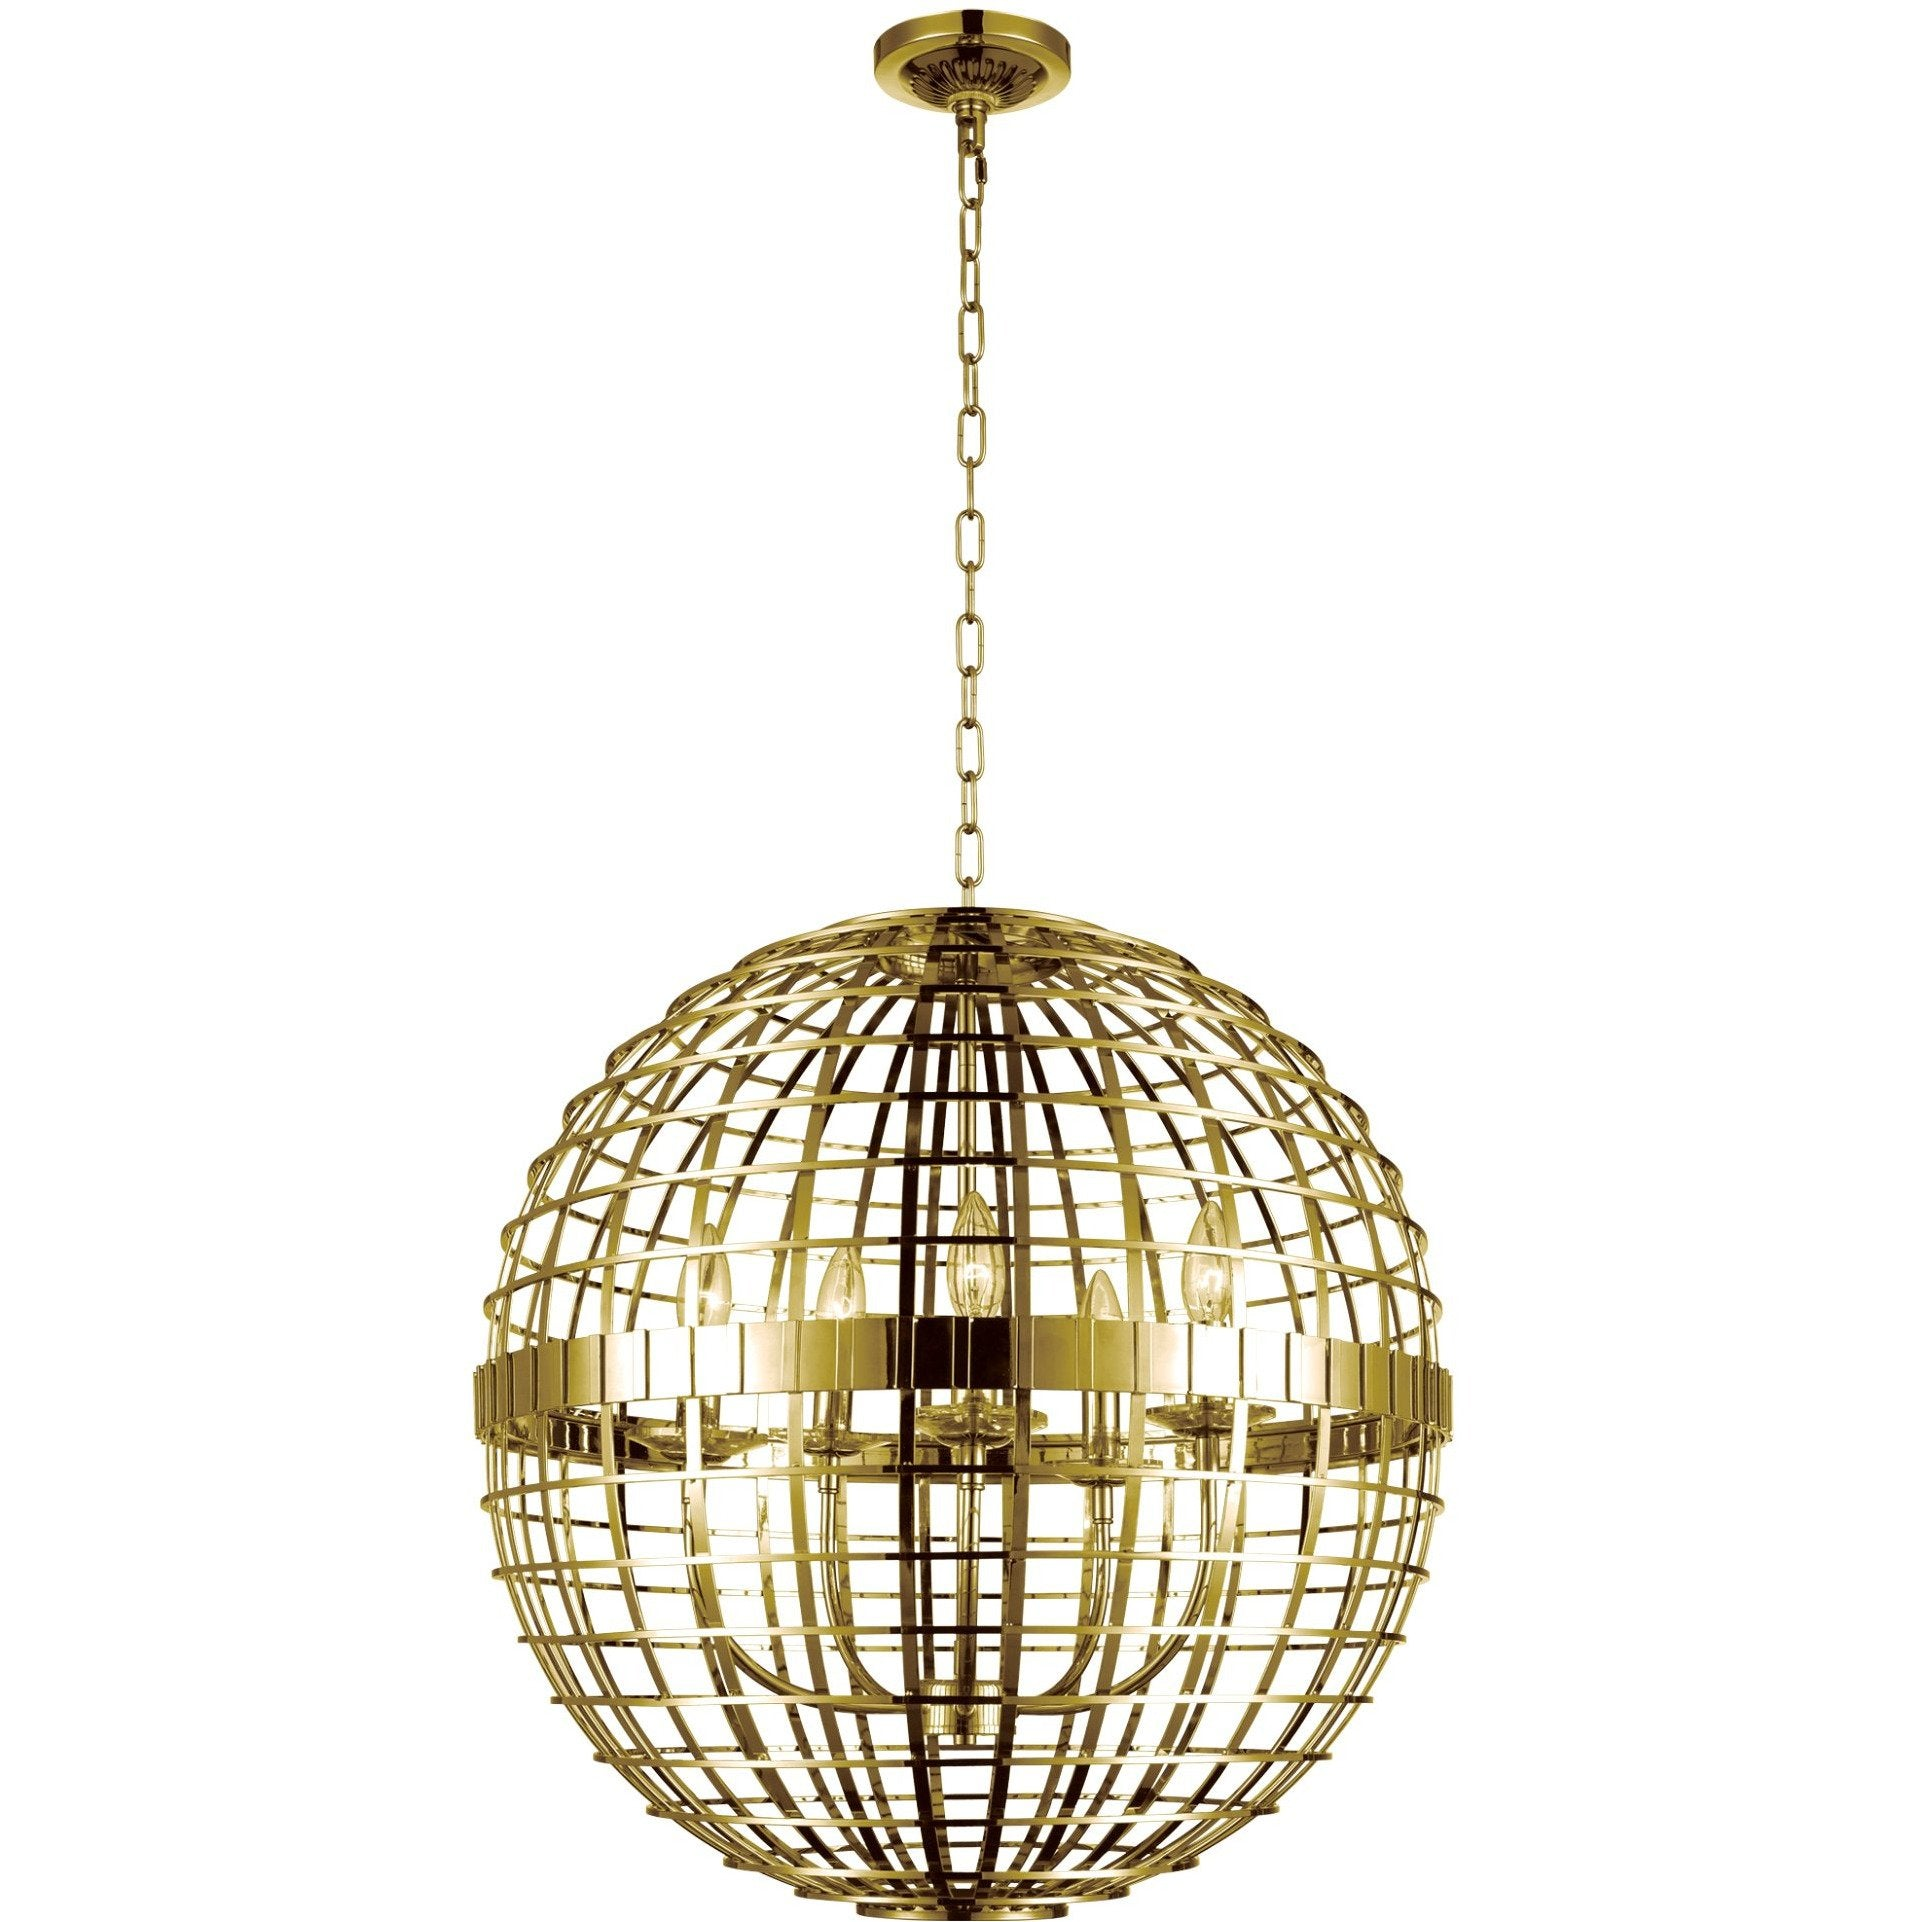 CWI Lighting Chandeliers Gold Niya 5 Light Chandelier with Gold finish by CWI Lighting 9974P22-5-608